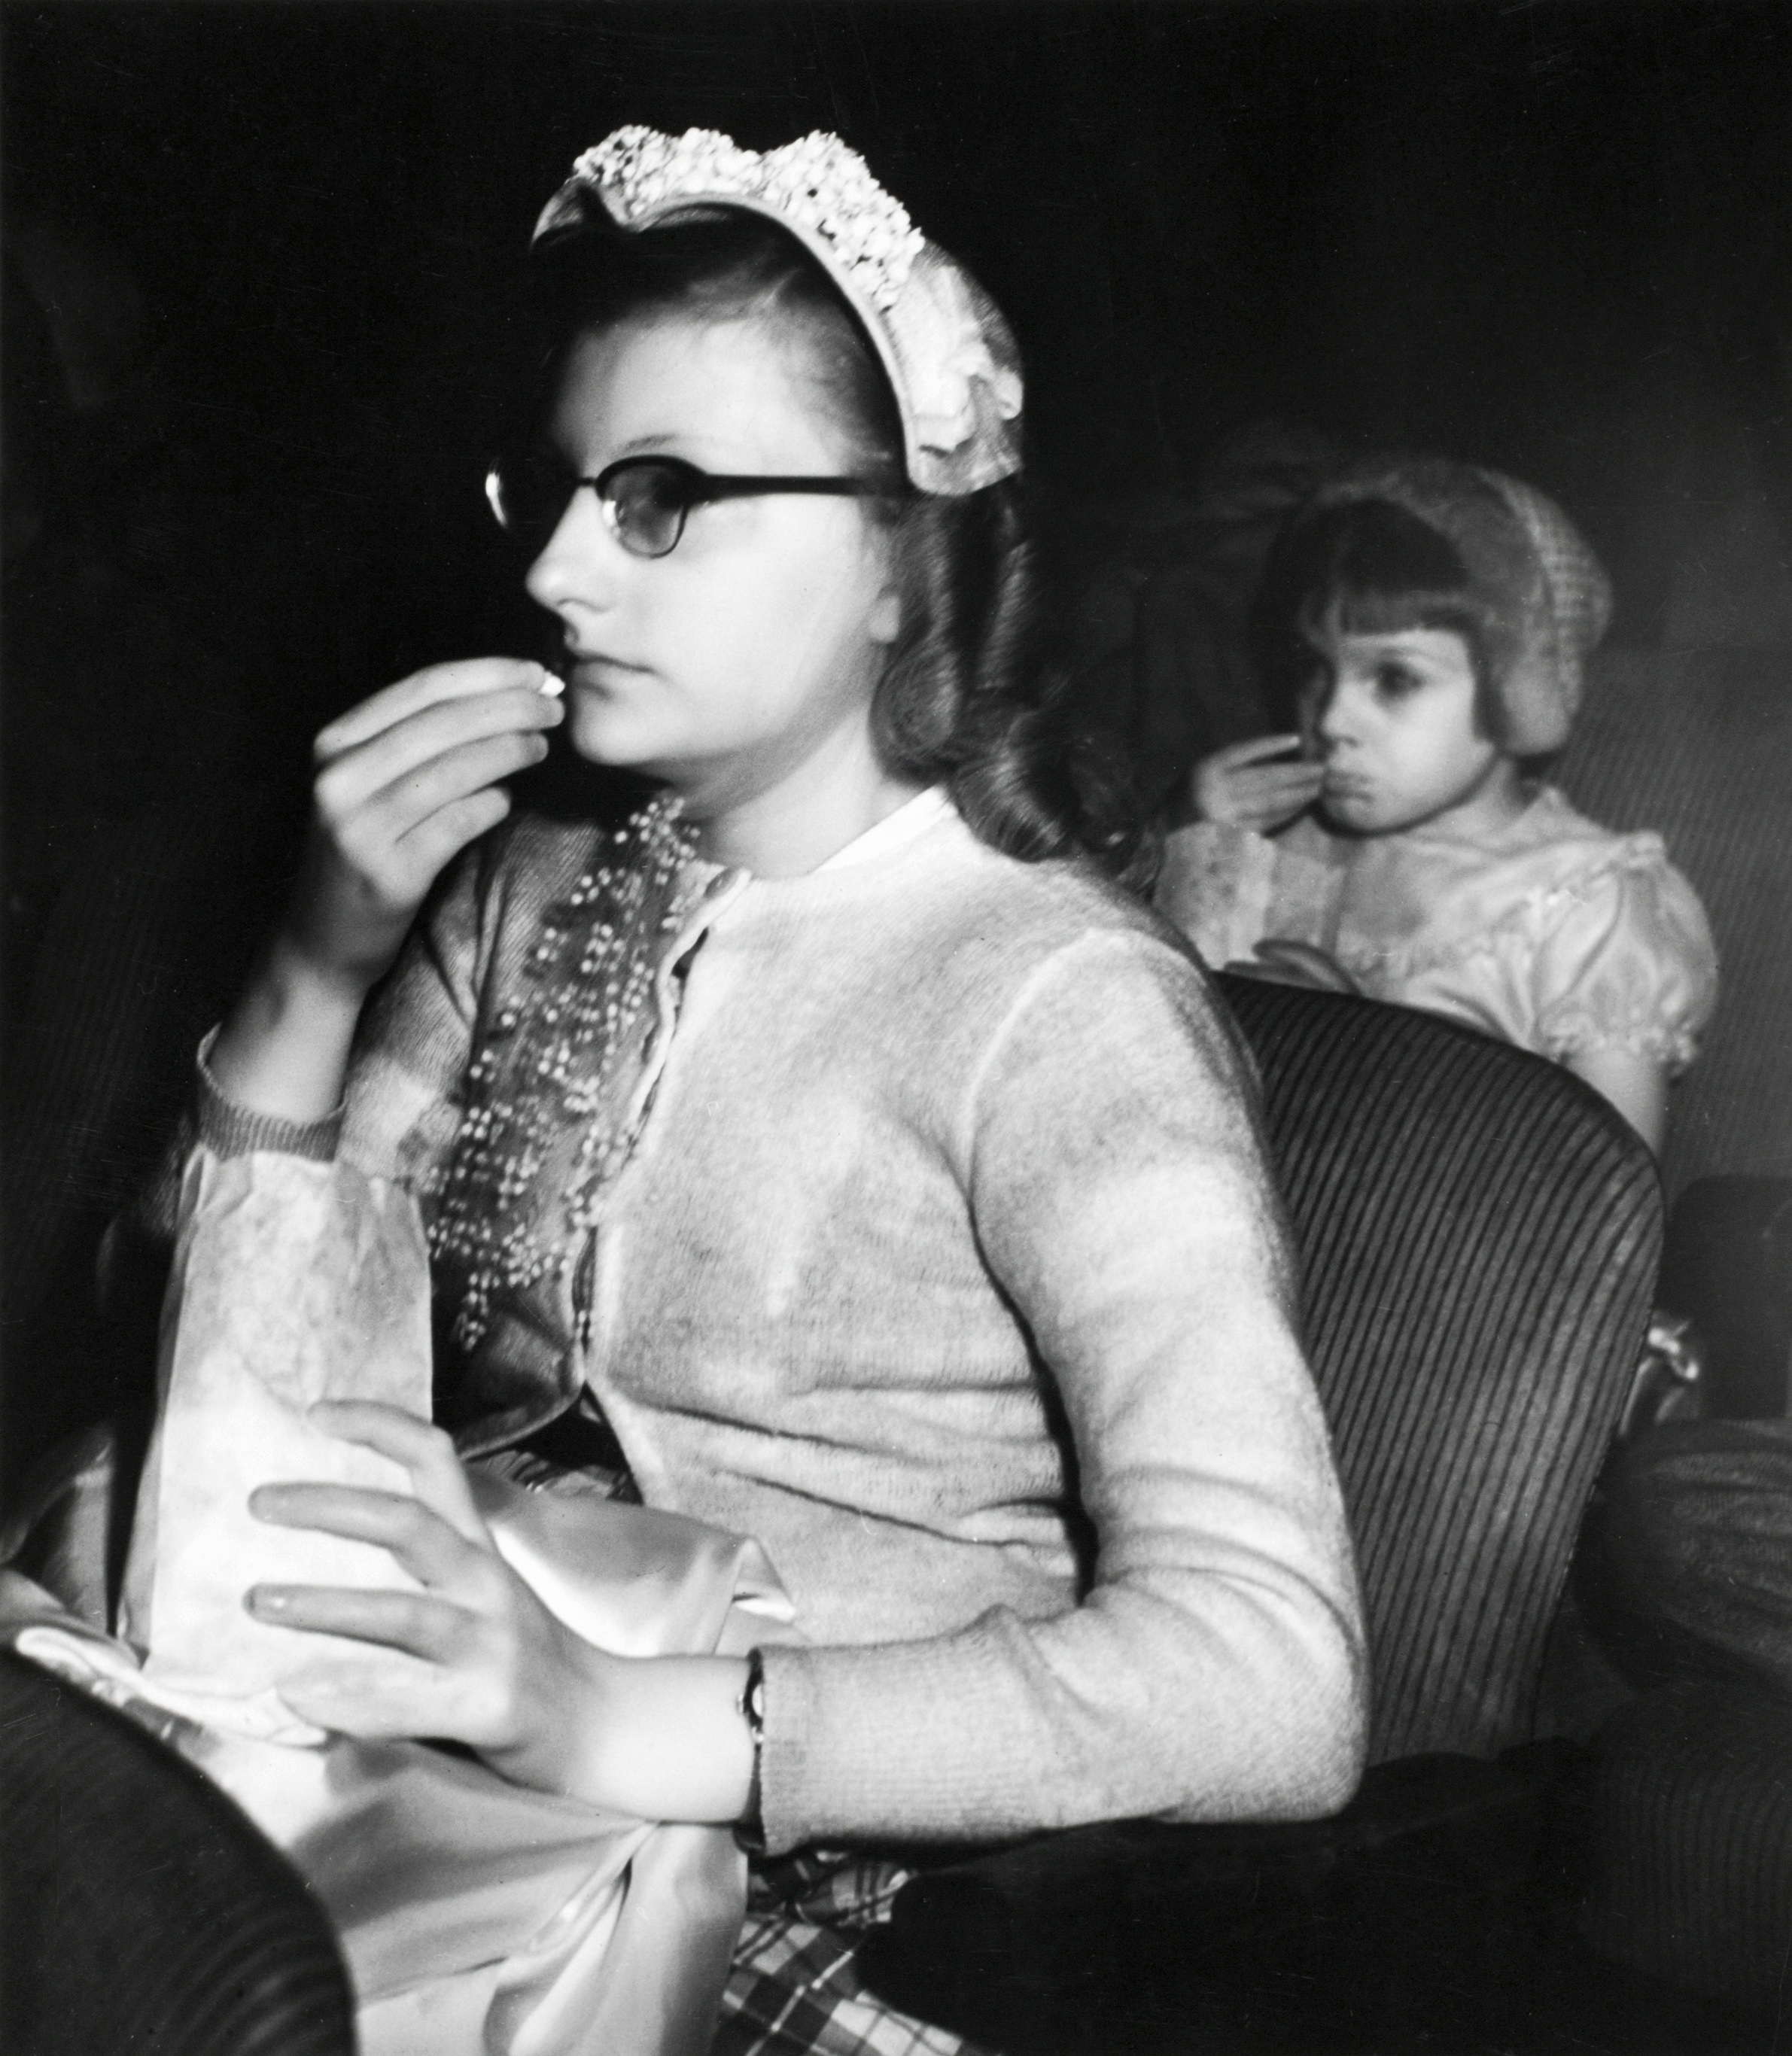 TRANSFIXED: Girl eating popcorn, ca. 1943. © Weegee/ International Center of Photography.